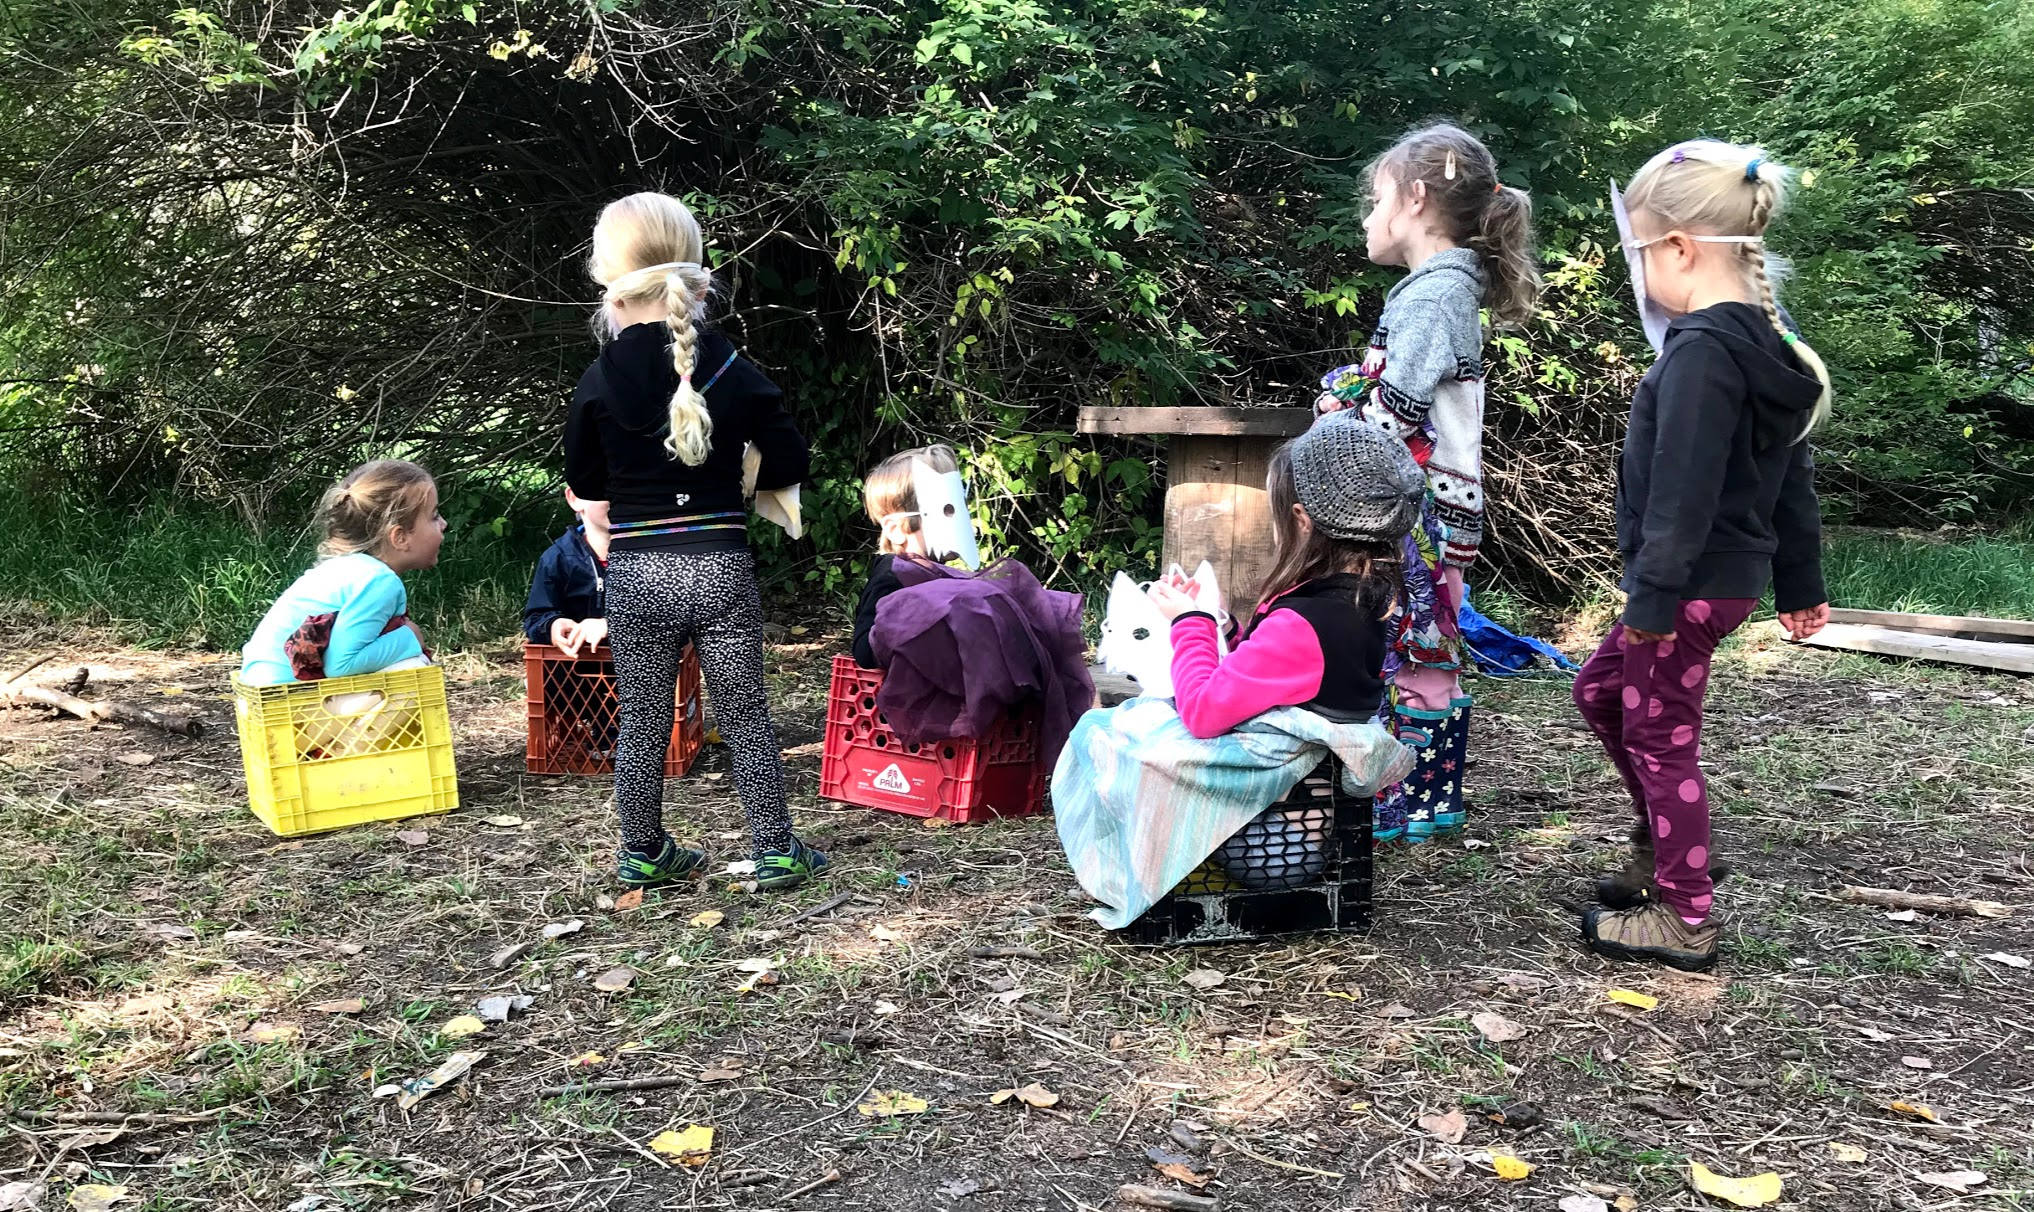 Friends in the Wild - Summer Camp (ages 4-8), July 12-16